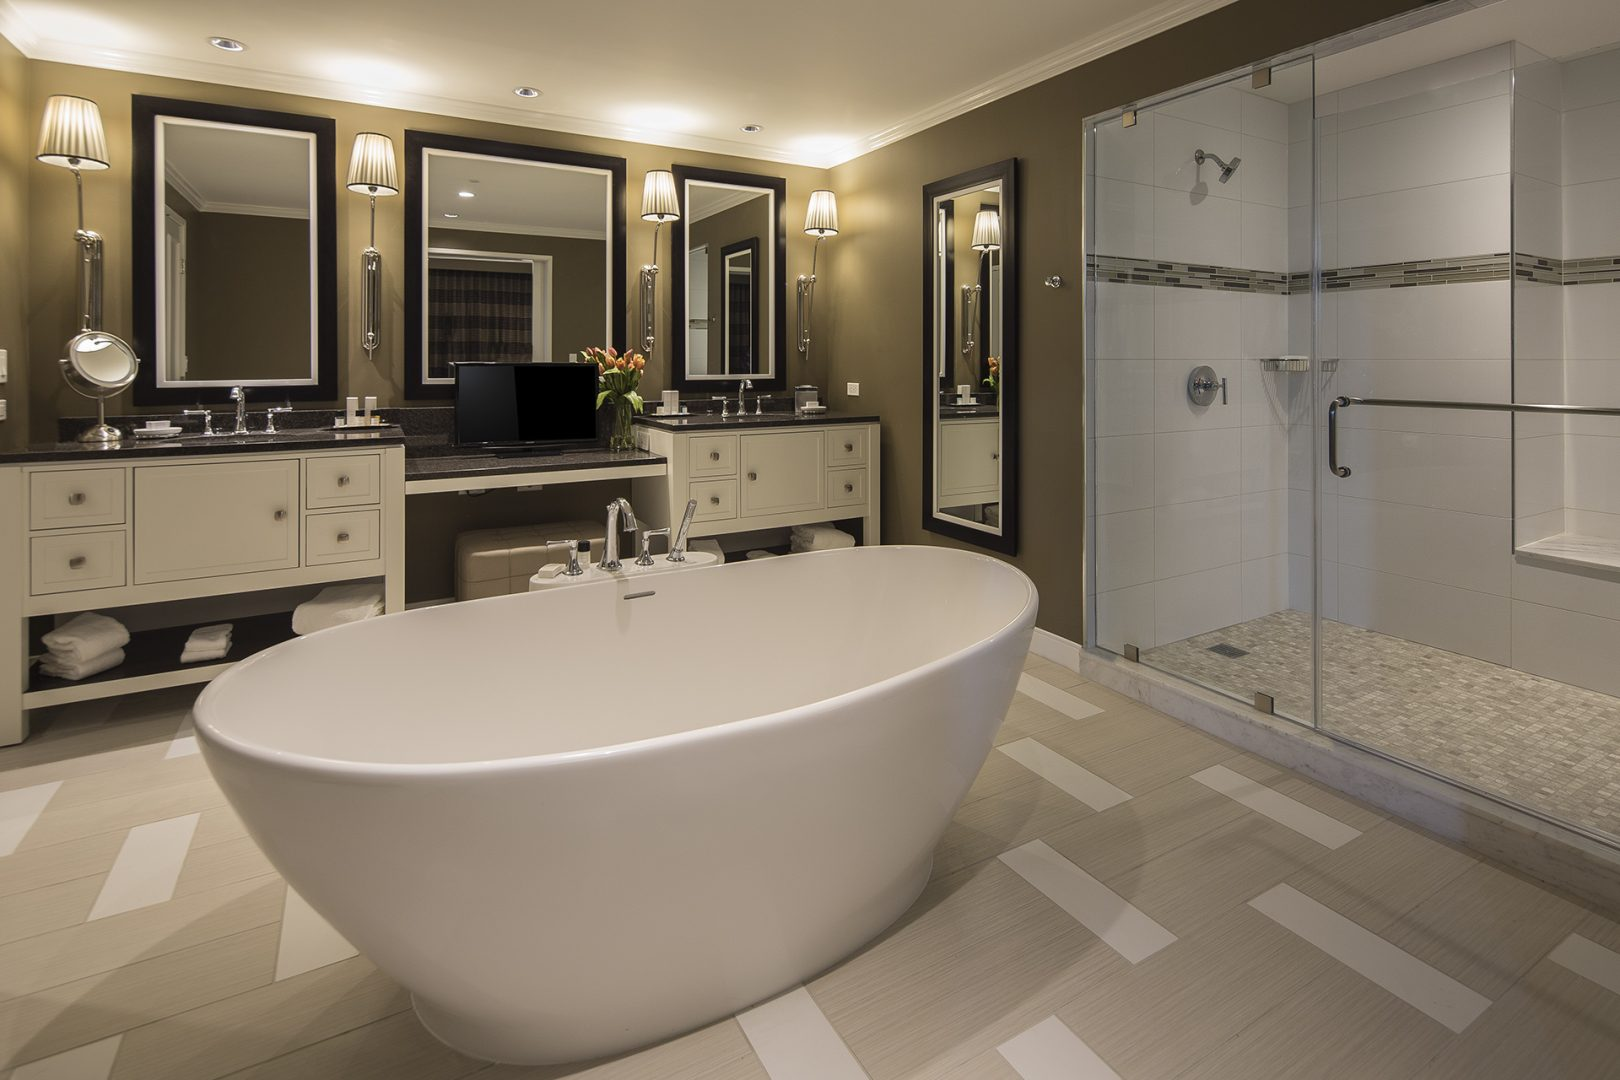 Hospitality Architecture Interior Design Golden Nugget Lake Charles Rush Tower Luxury Bathroom Double Vanity Free Standing Tub Walk in Shower